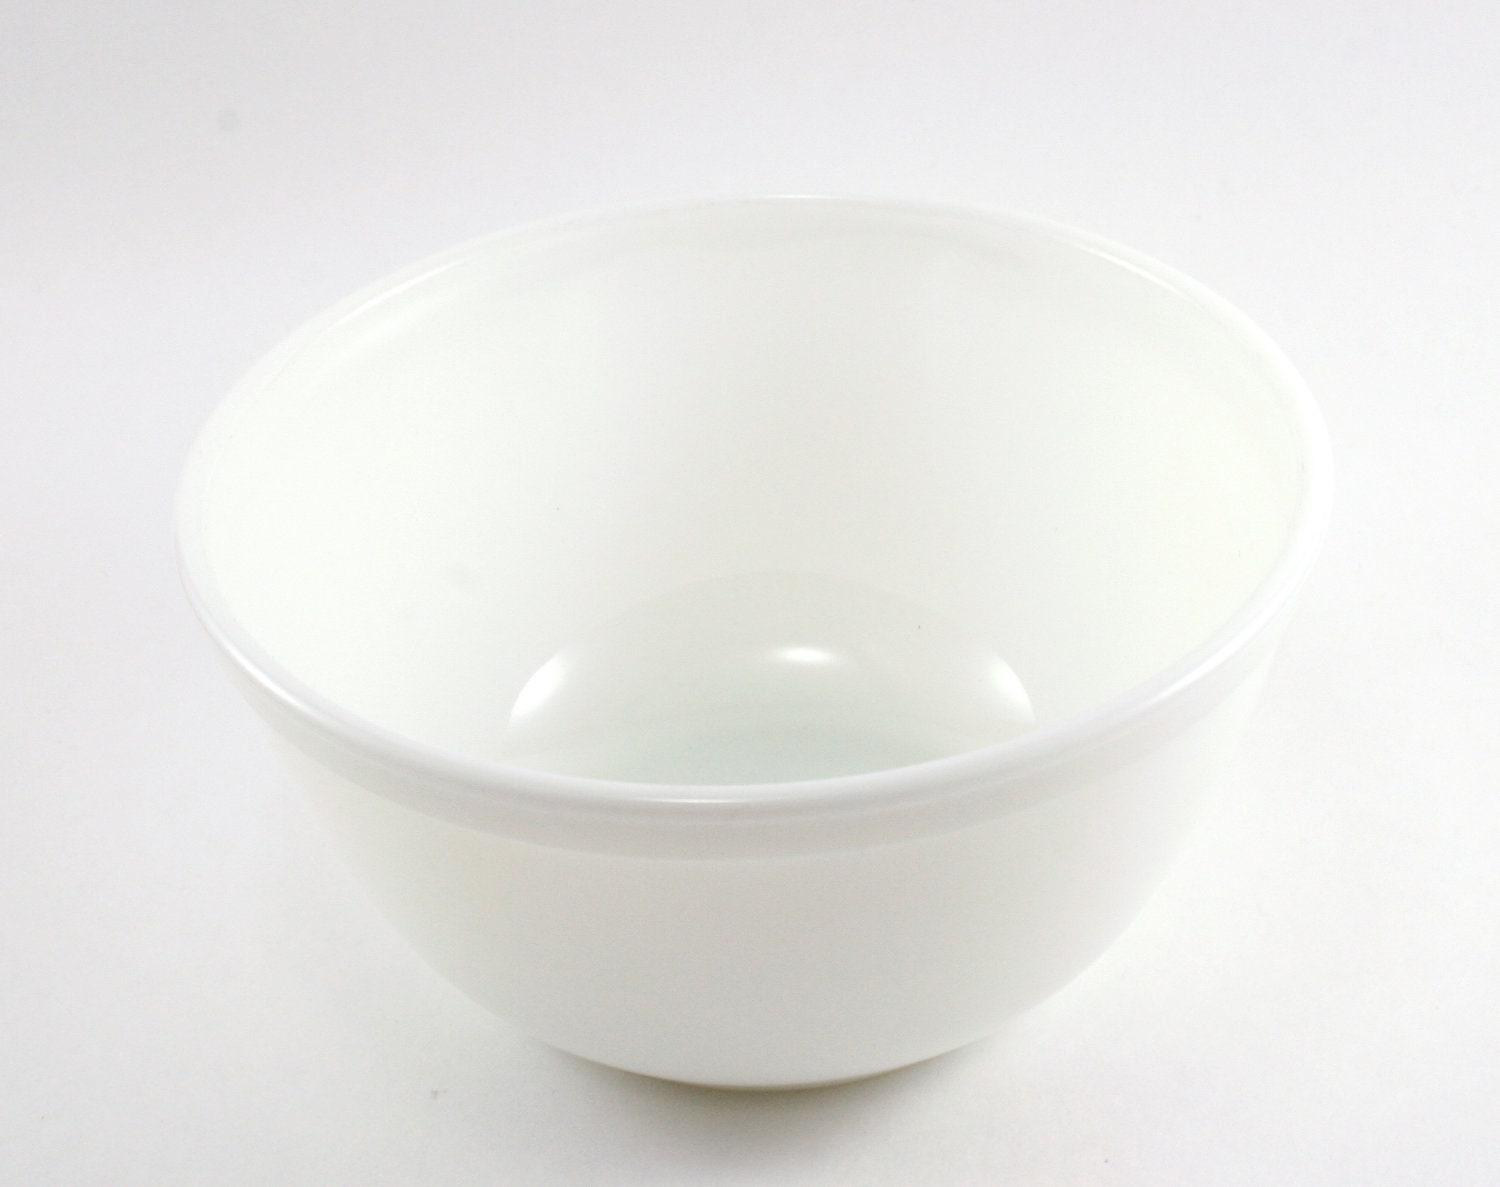 Vintage 1950s White / Milk Glass Pyrex Mixing Bowl / White Kitchen - TheLuckyFindVintage